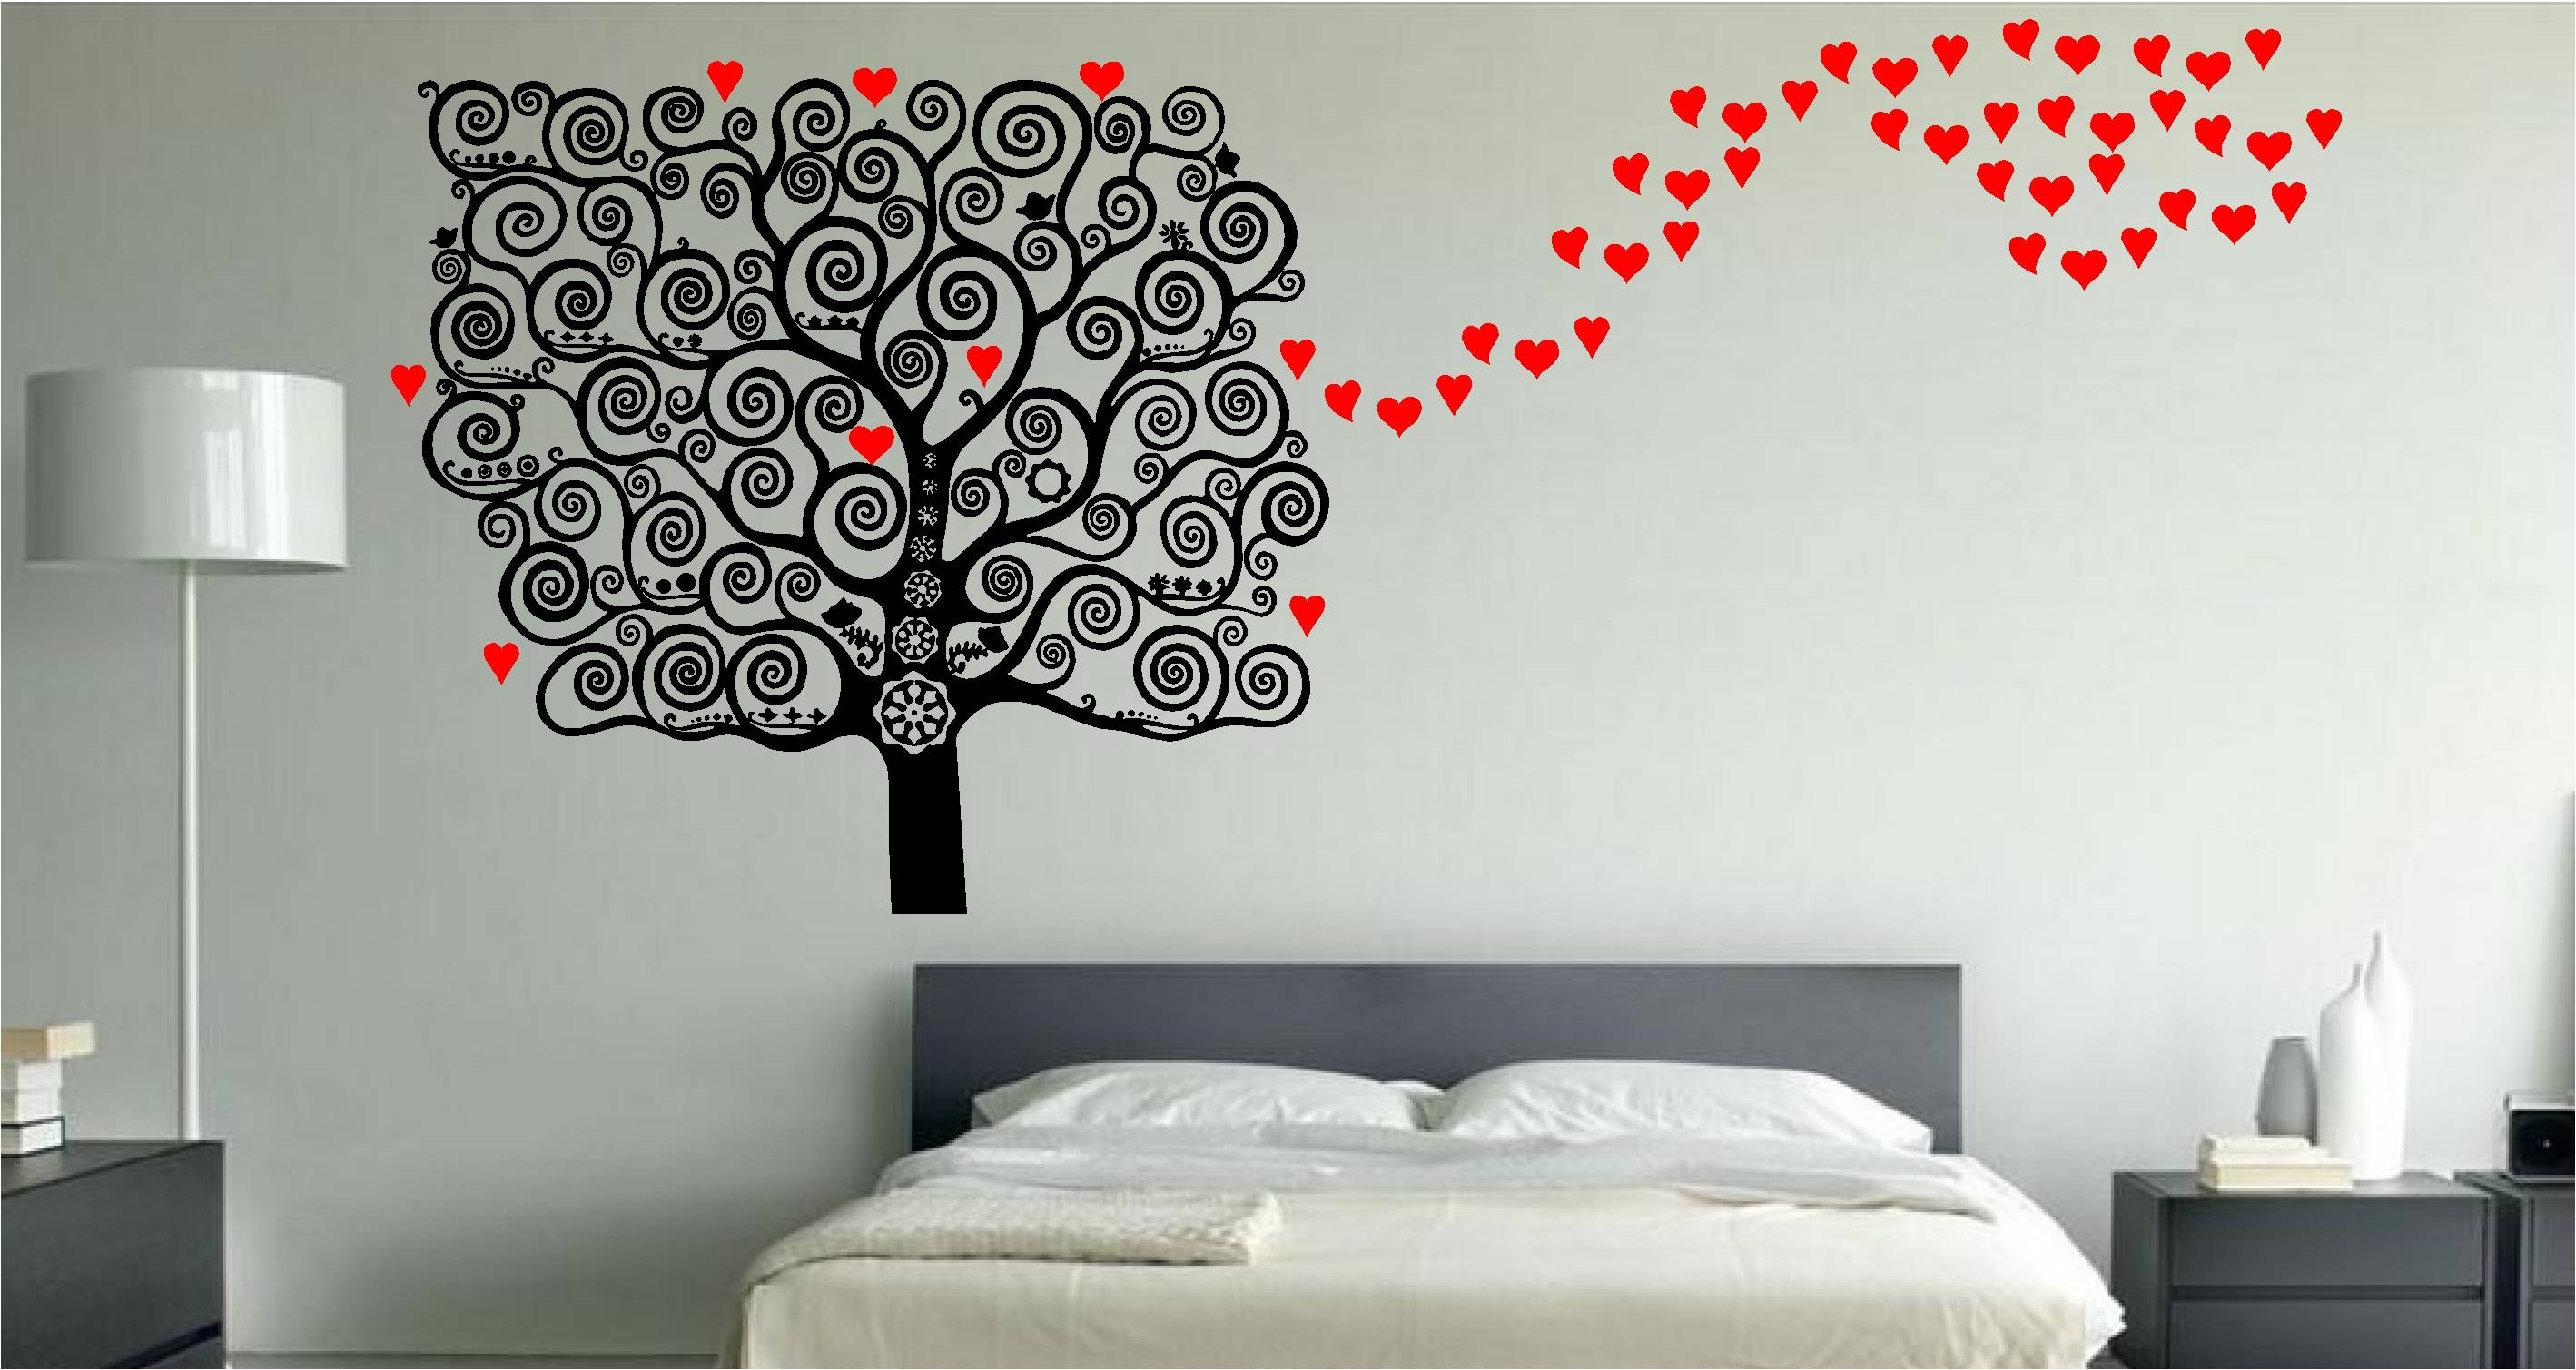 Wall Art Ideas Photo Pic Bedroom Art – Surripui Pertaining To Most Up To Date Bed Wall Art (View 8 of 25)